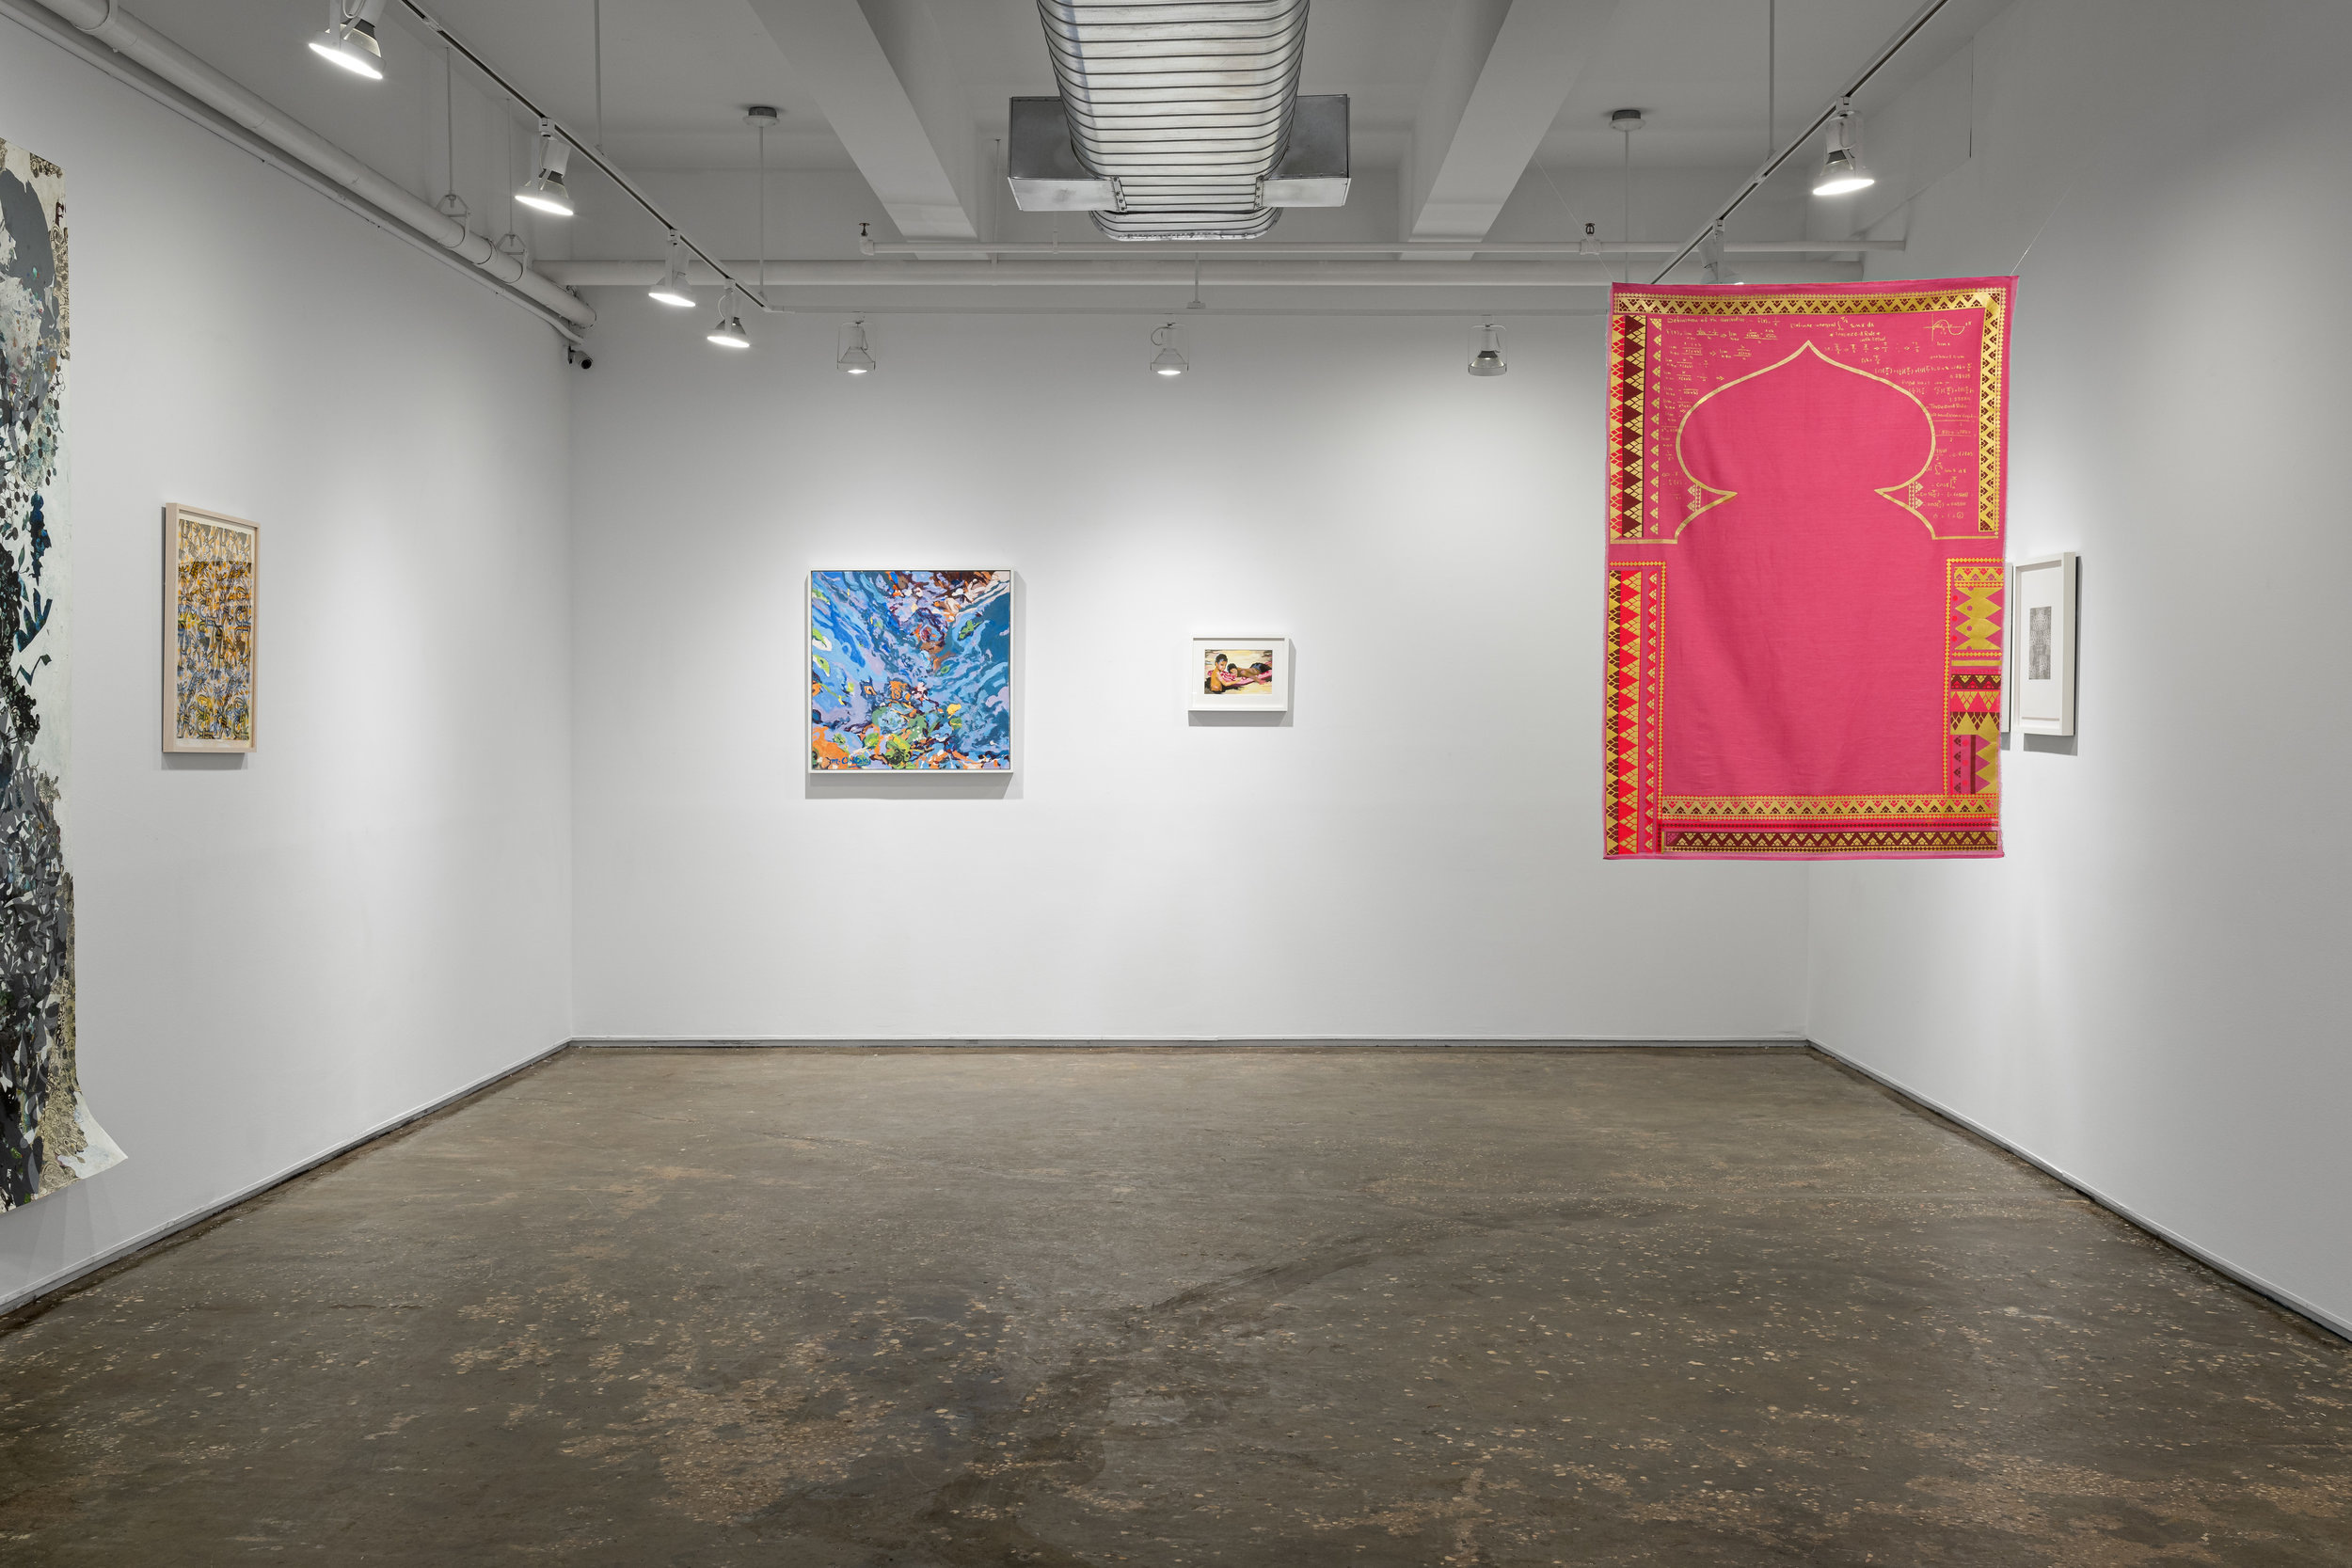 Installation view of  Active directions of the mind . Photo by Sebastian Bach.